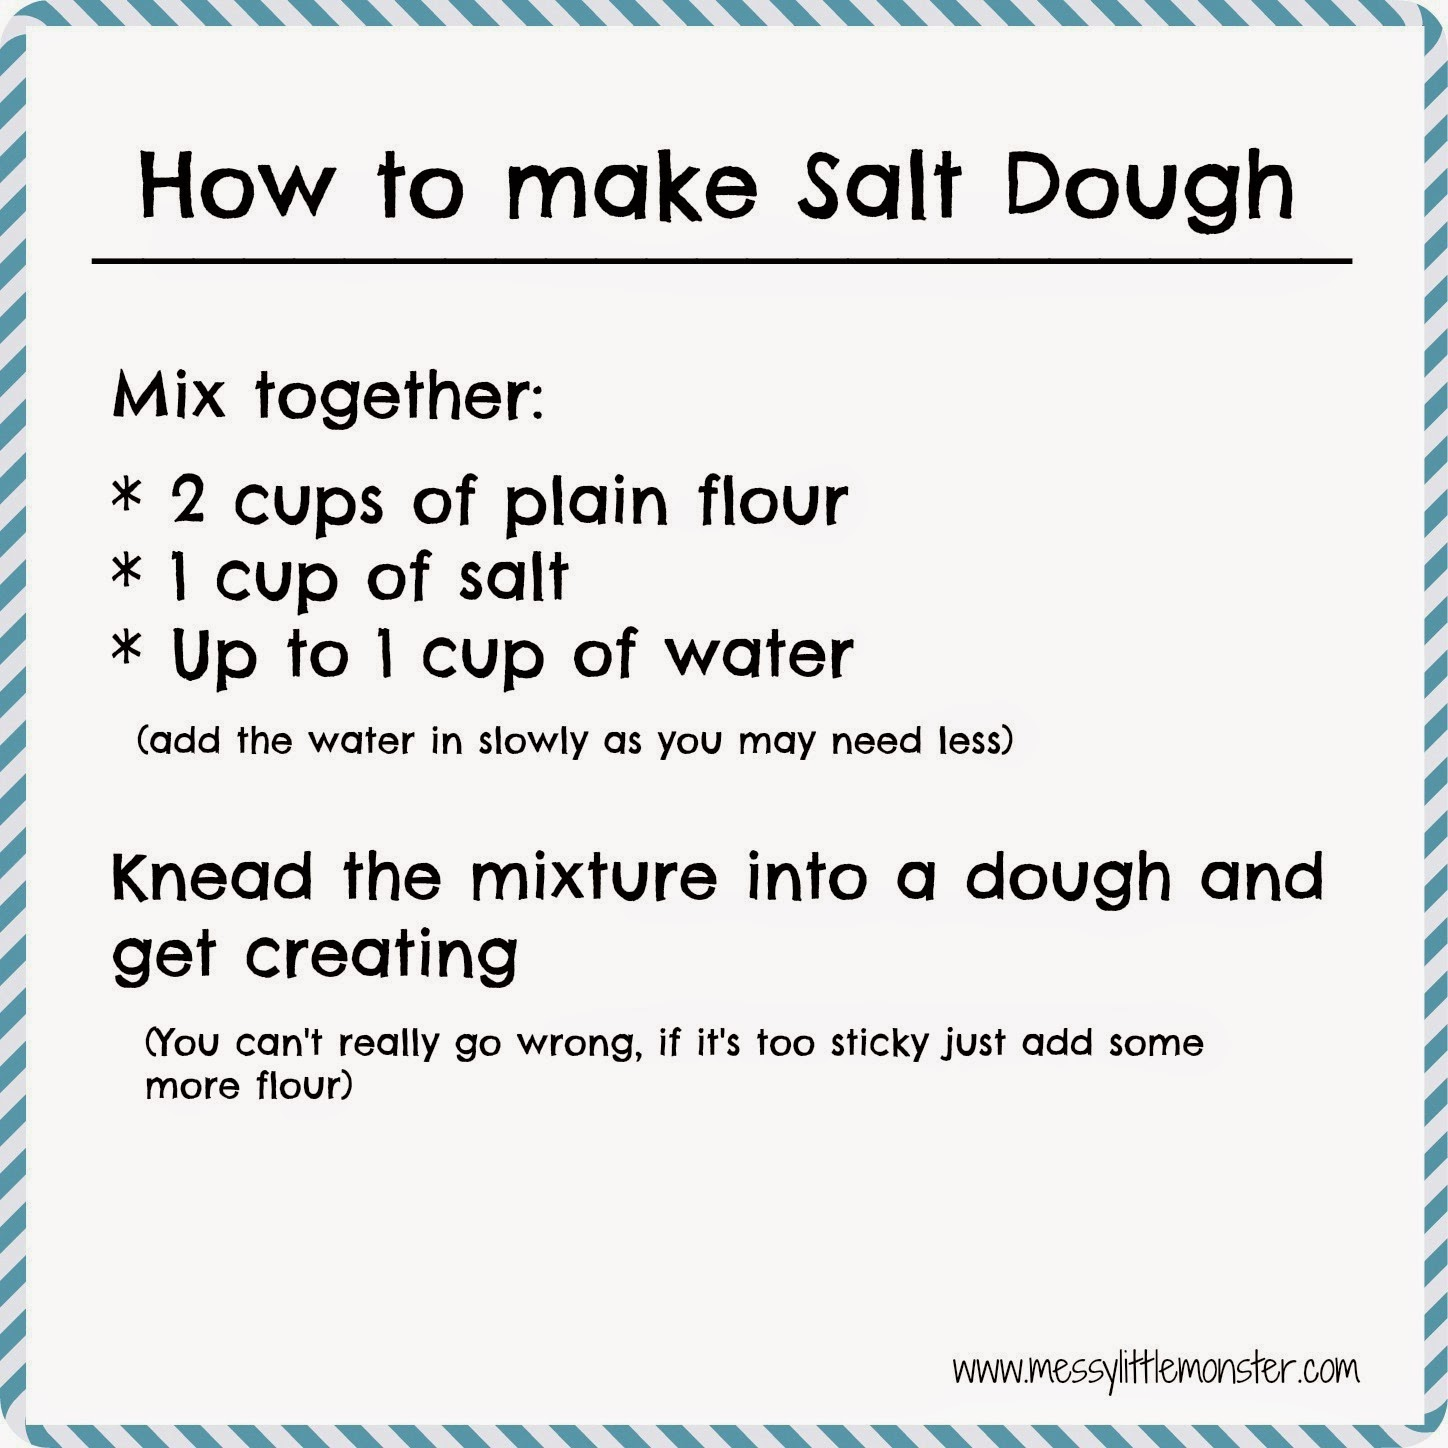 How to make salt dough recipe.  Simple printable recipe and salt dough craft ideas for kids.